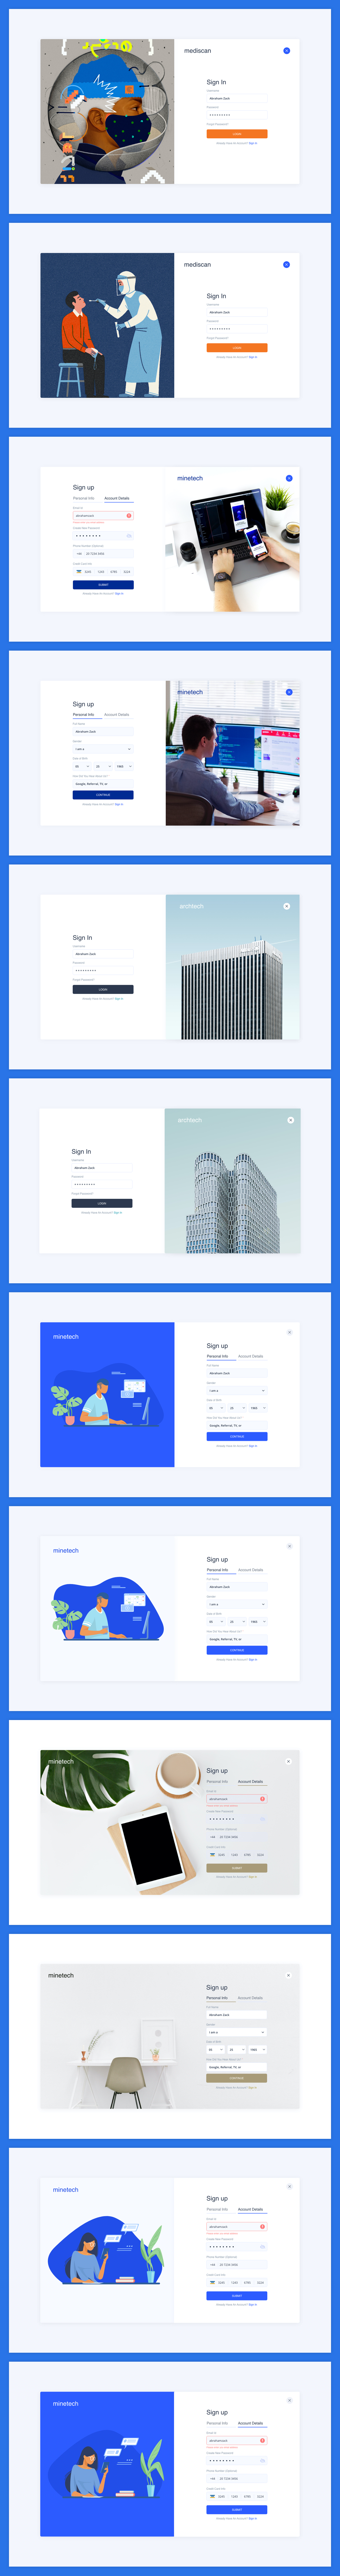 Sign Up Onboarding Free UI Kit for Adobe XD - 6+ screens that will help you to design clear user interfaces for sign up onboarding.